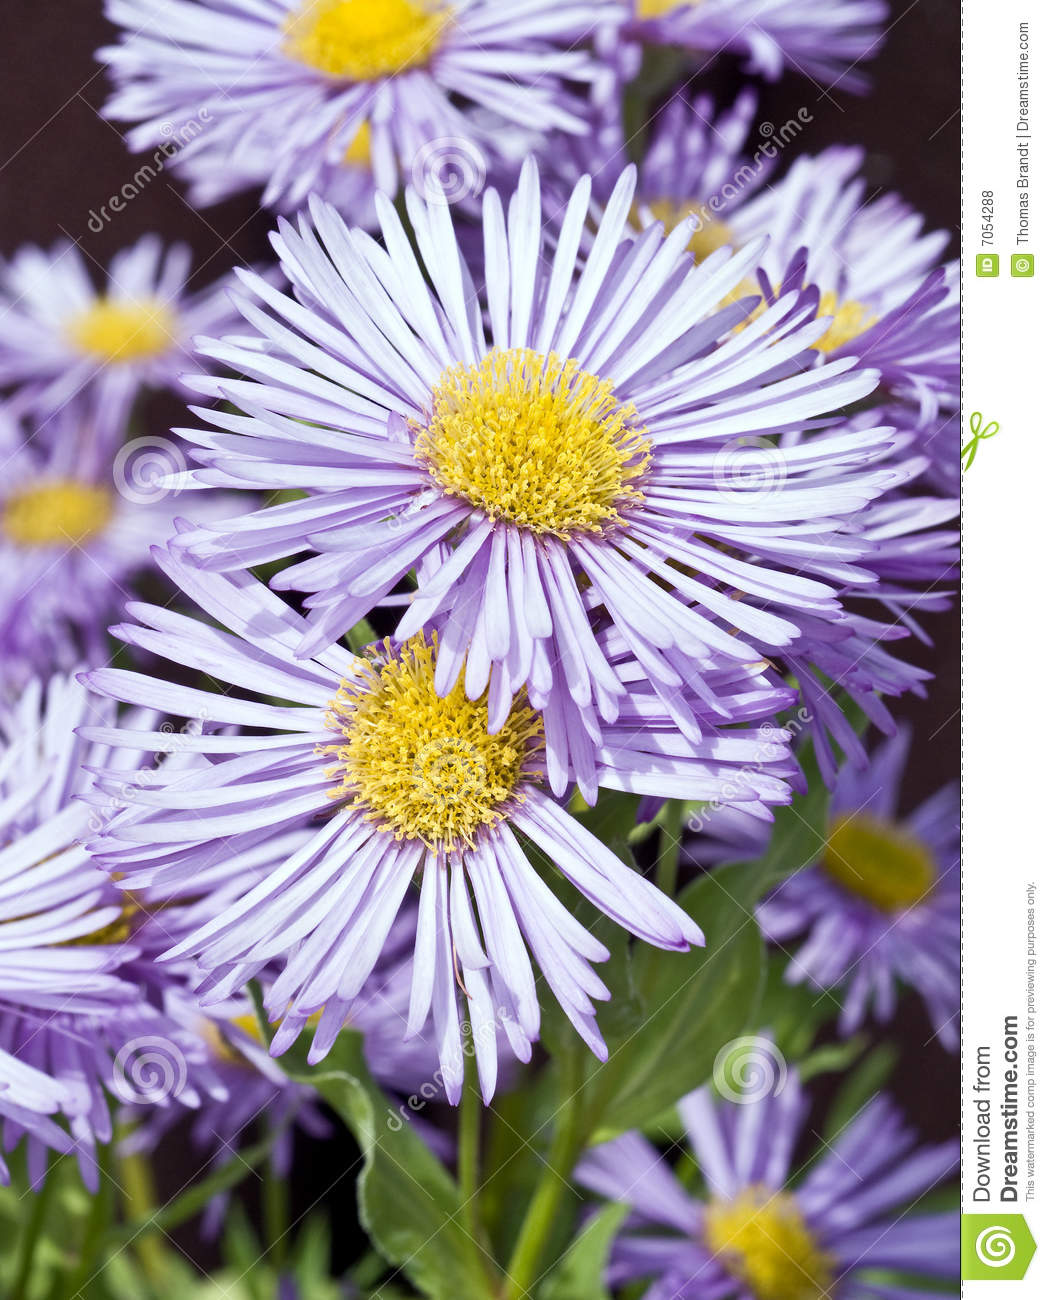 Lavender blue coloured flowers in bloom stock photo image of closeup of the nearly double light lavender blue daisy like flowers with showy yellow centers of the erigeron variety prosperity also known as fleabane izmirmasajfo